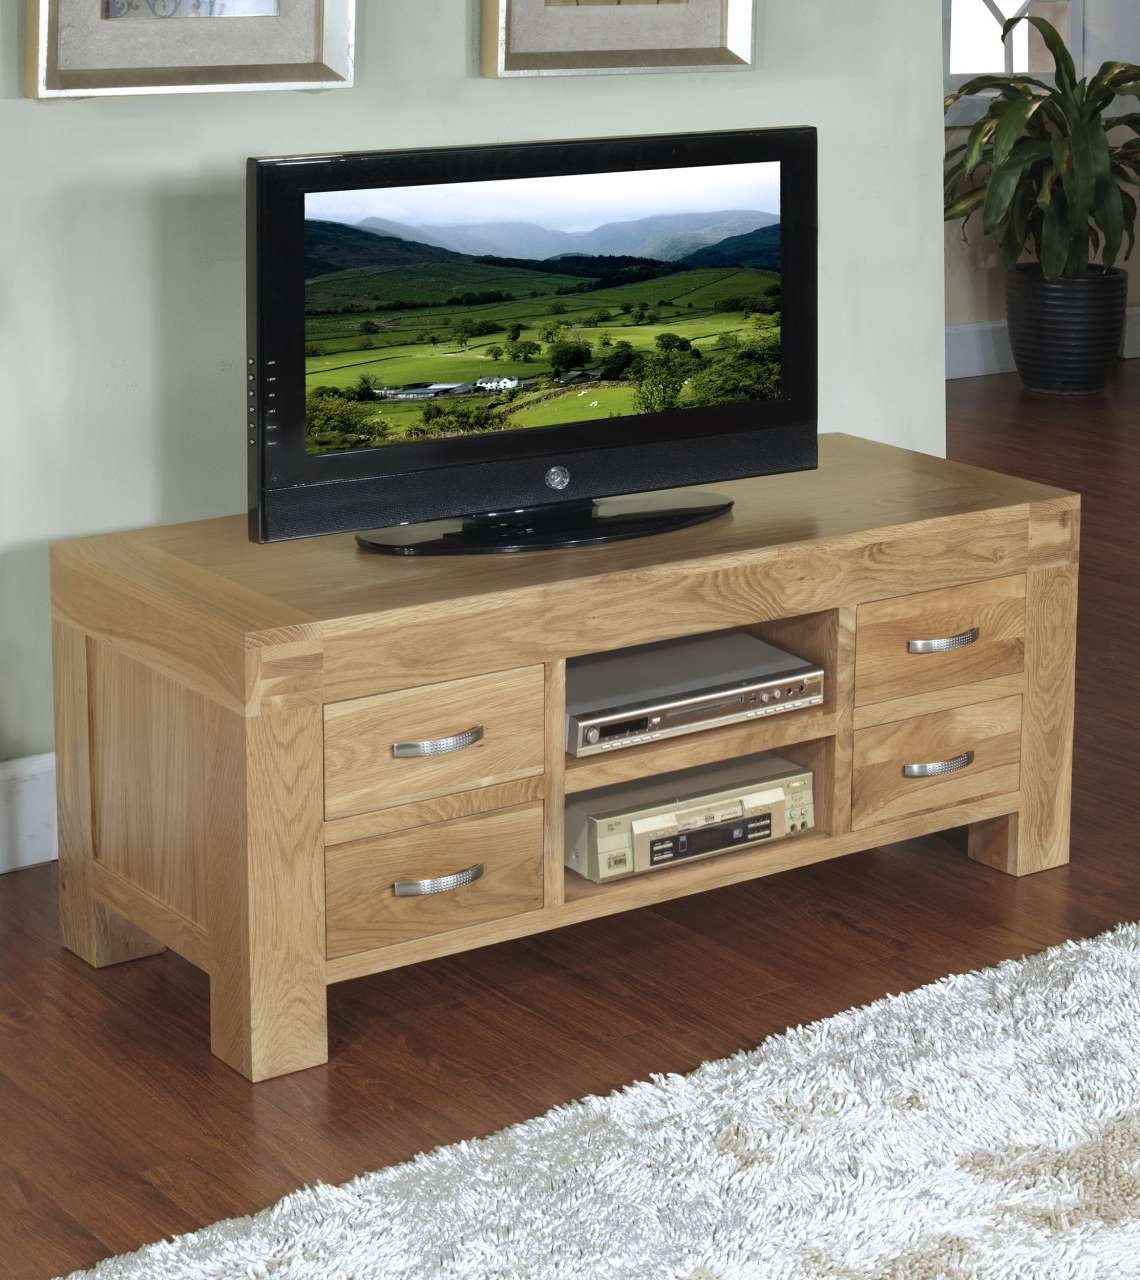 Tv Stands : Awesome Solid Wood Tv Stand Pictures Design With Inside Cheap Oak Tv Stands (View 12 of 15)